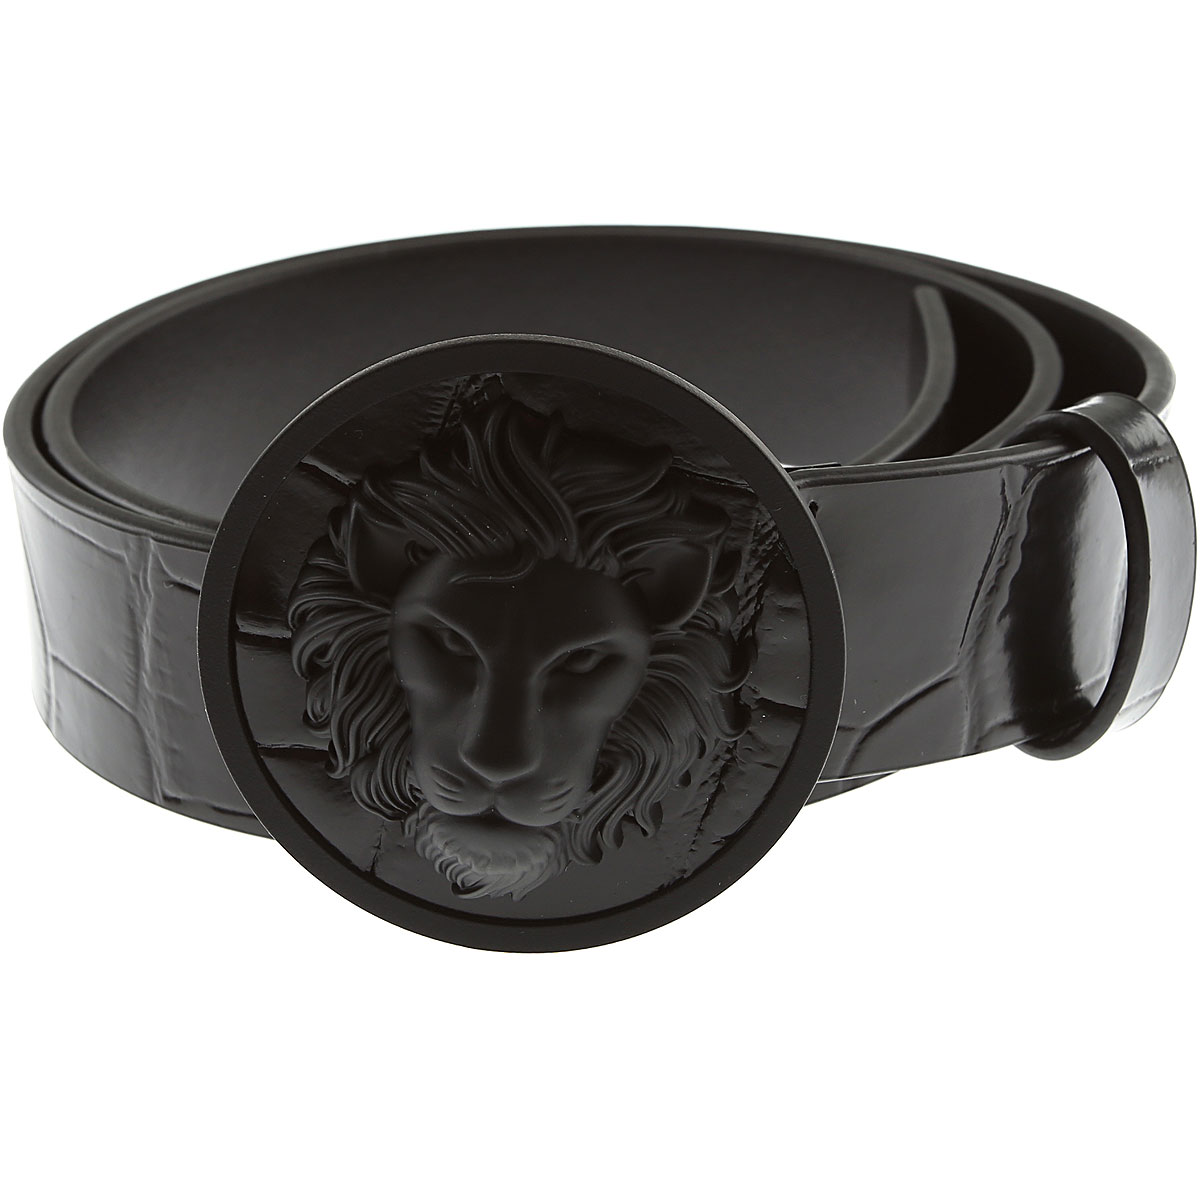 Gianni Versace Mens Belts On Sale, Black, Leather, 2019, 34 38